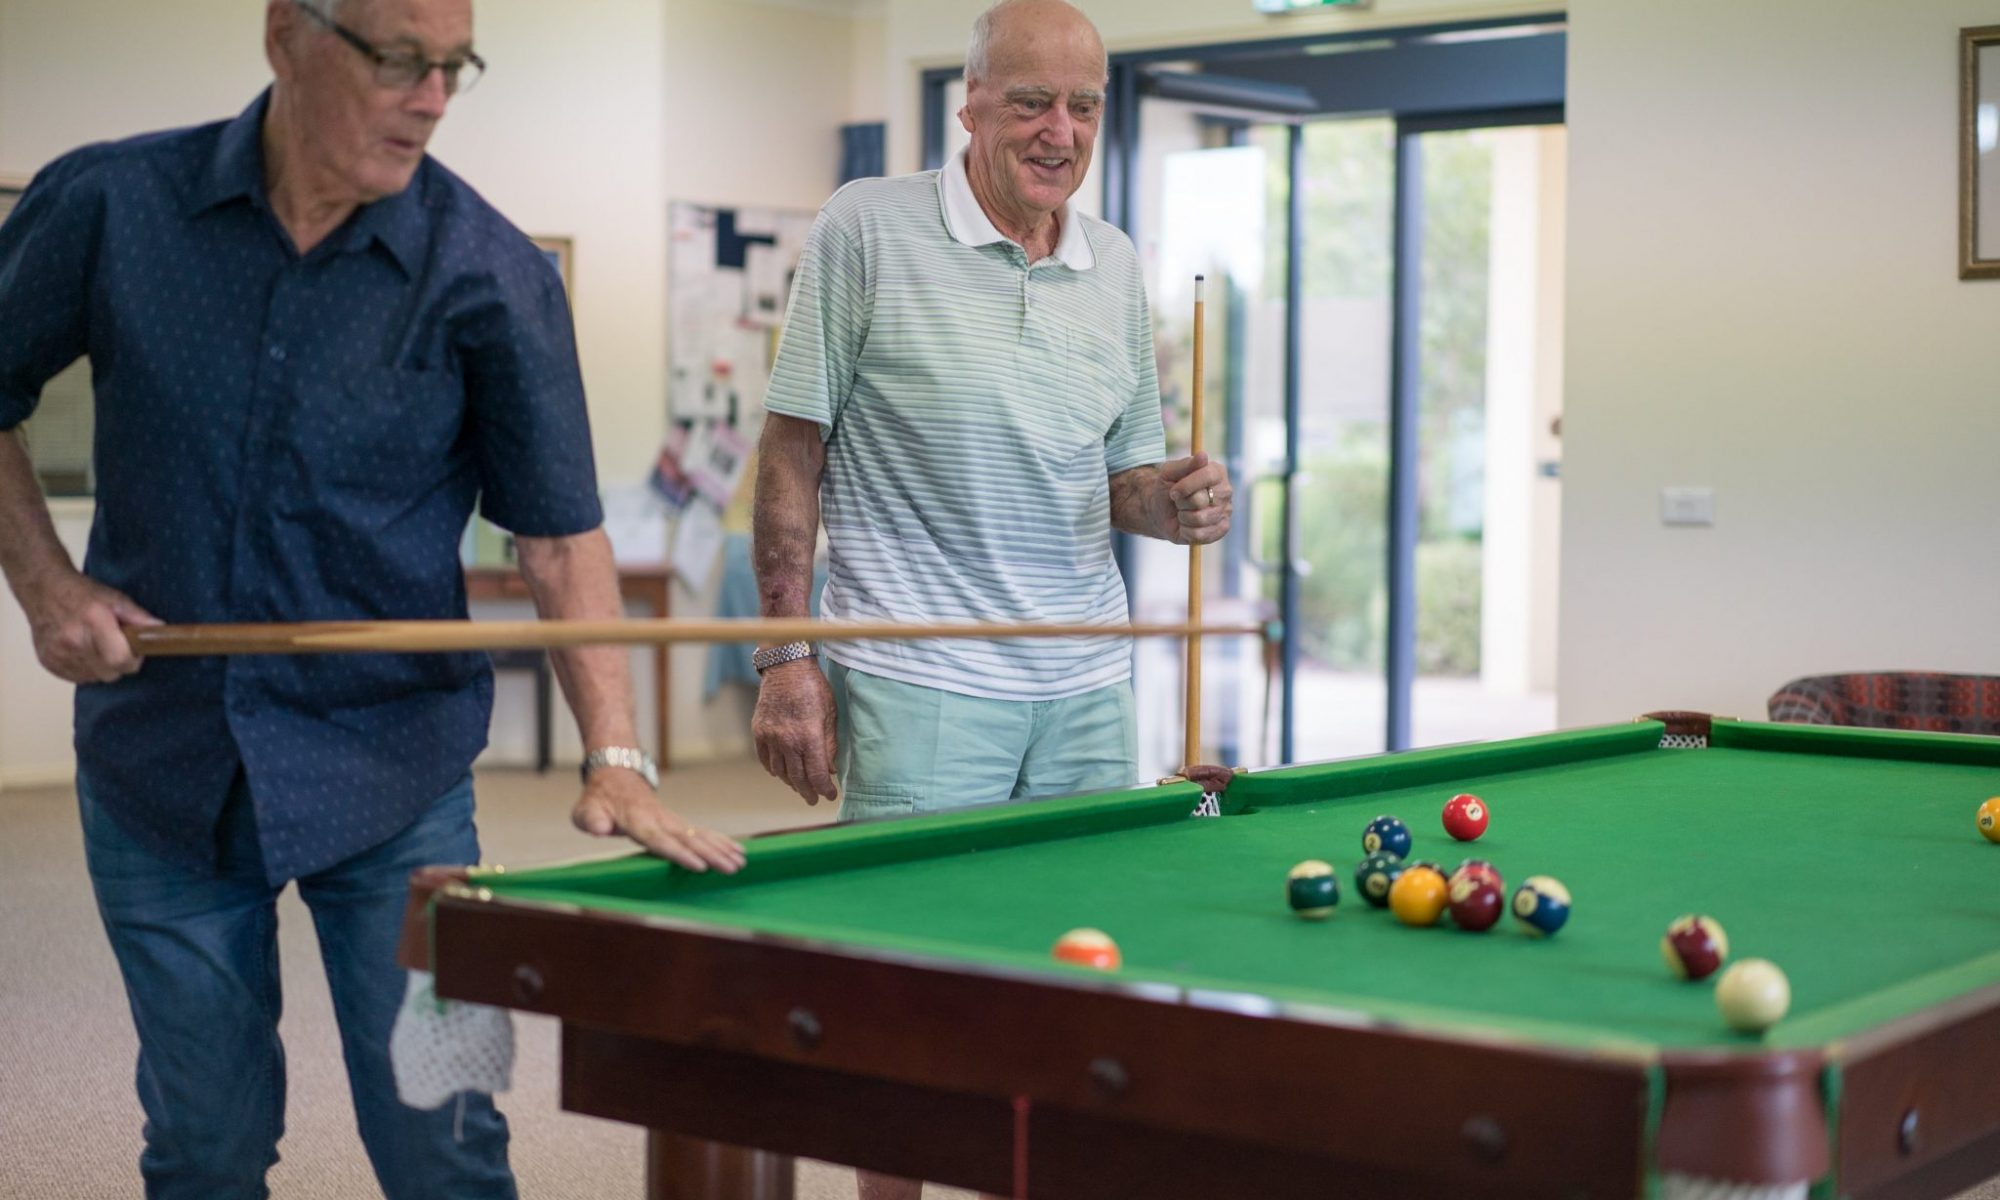 In-village activities included pool and billiards with new friends at Park Hall Village Wodonga - Wodonga-00426